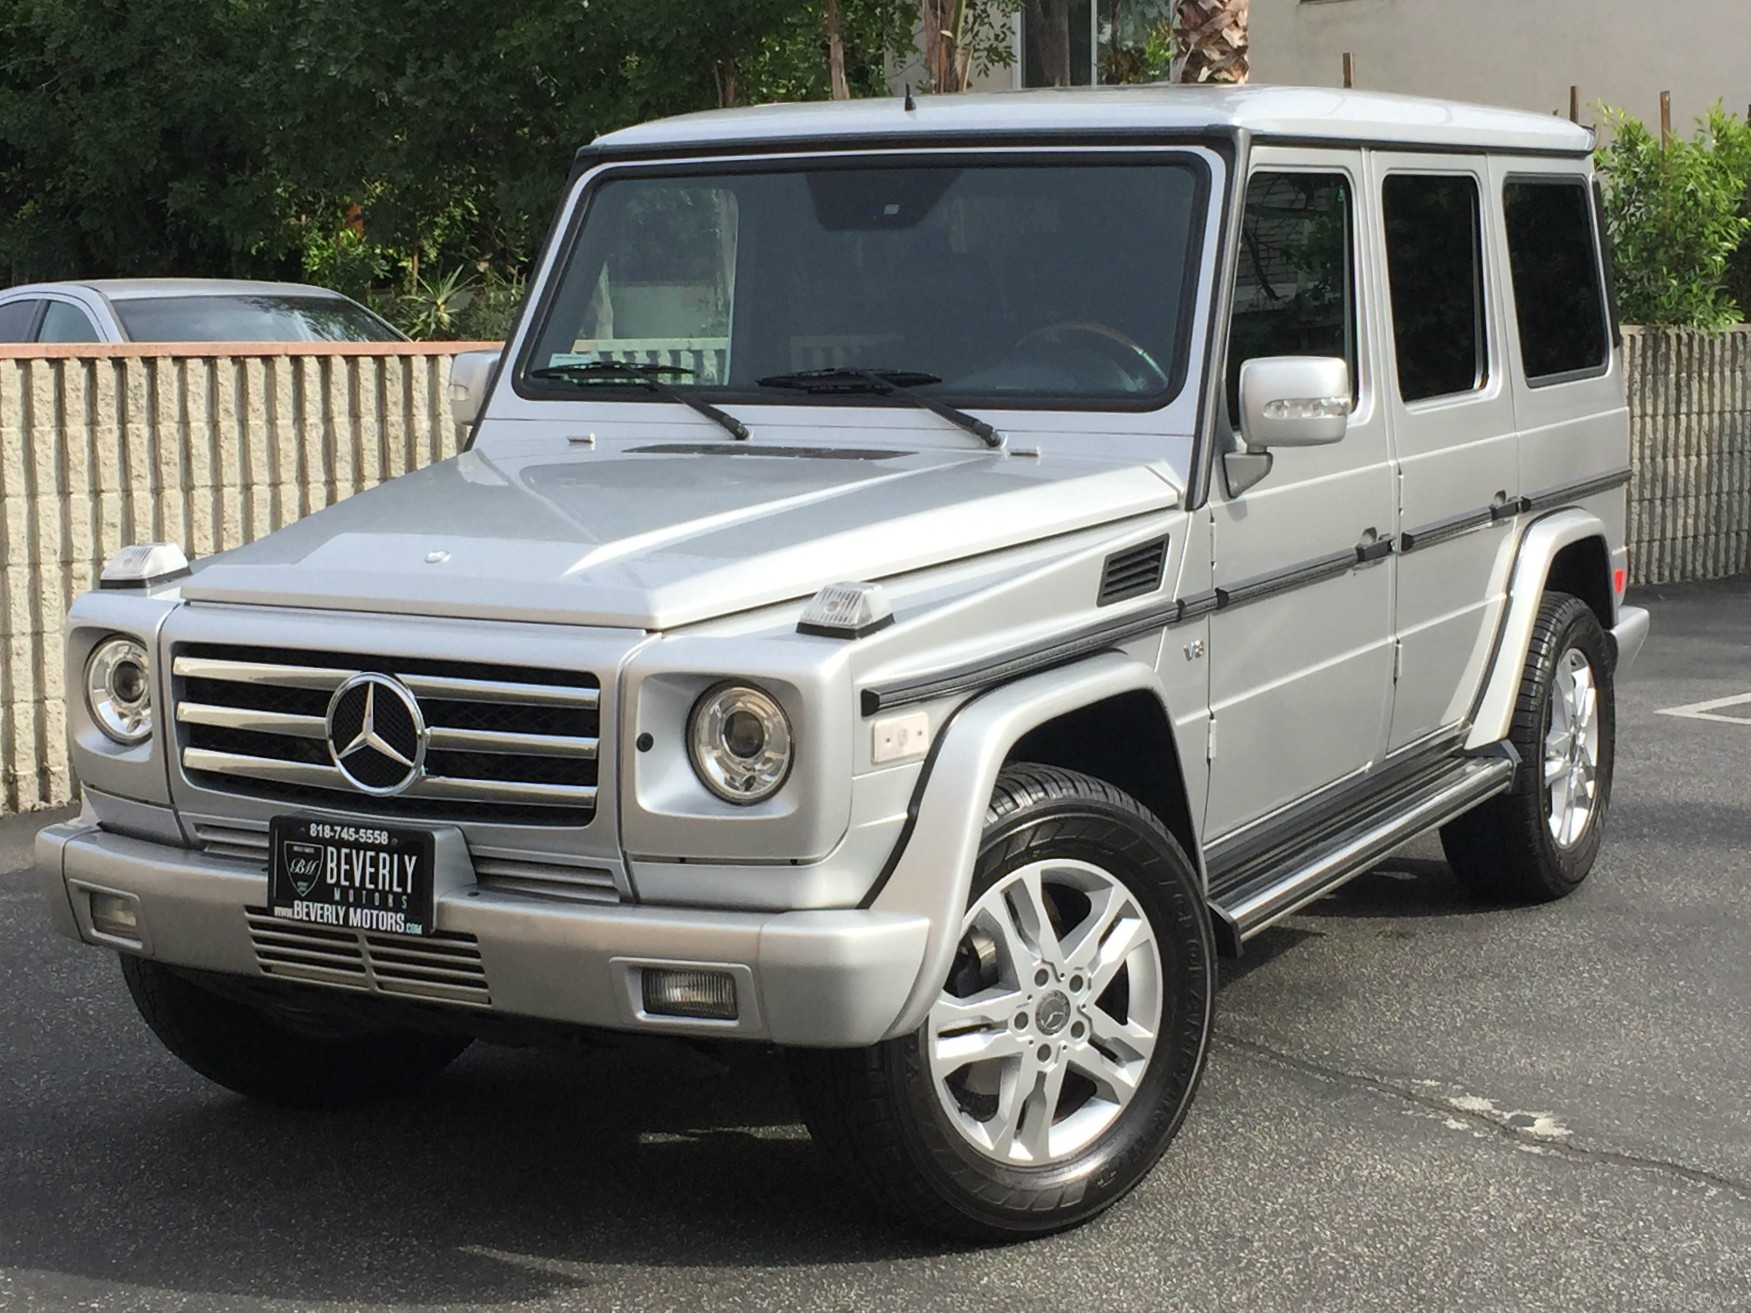 2004 mercedes benz g500 for sale silver on black beverly. Black Bedroom Furniture Sets. Home Design Ideas